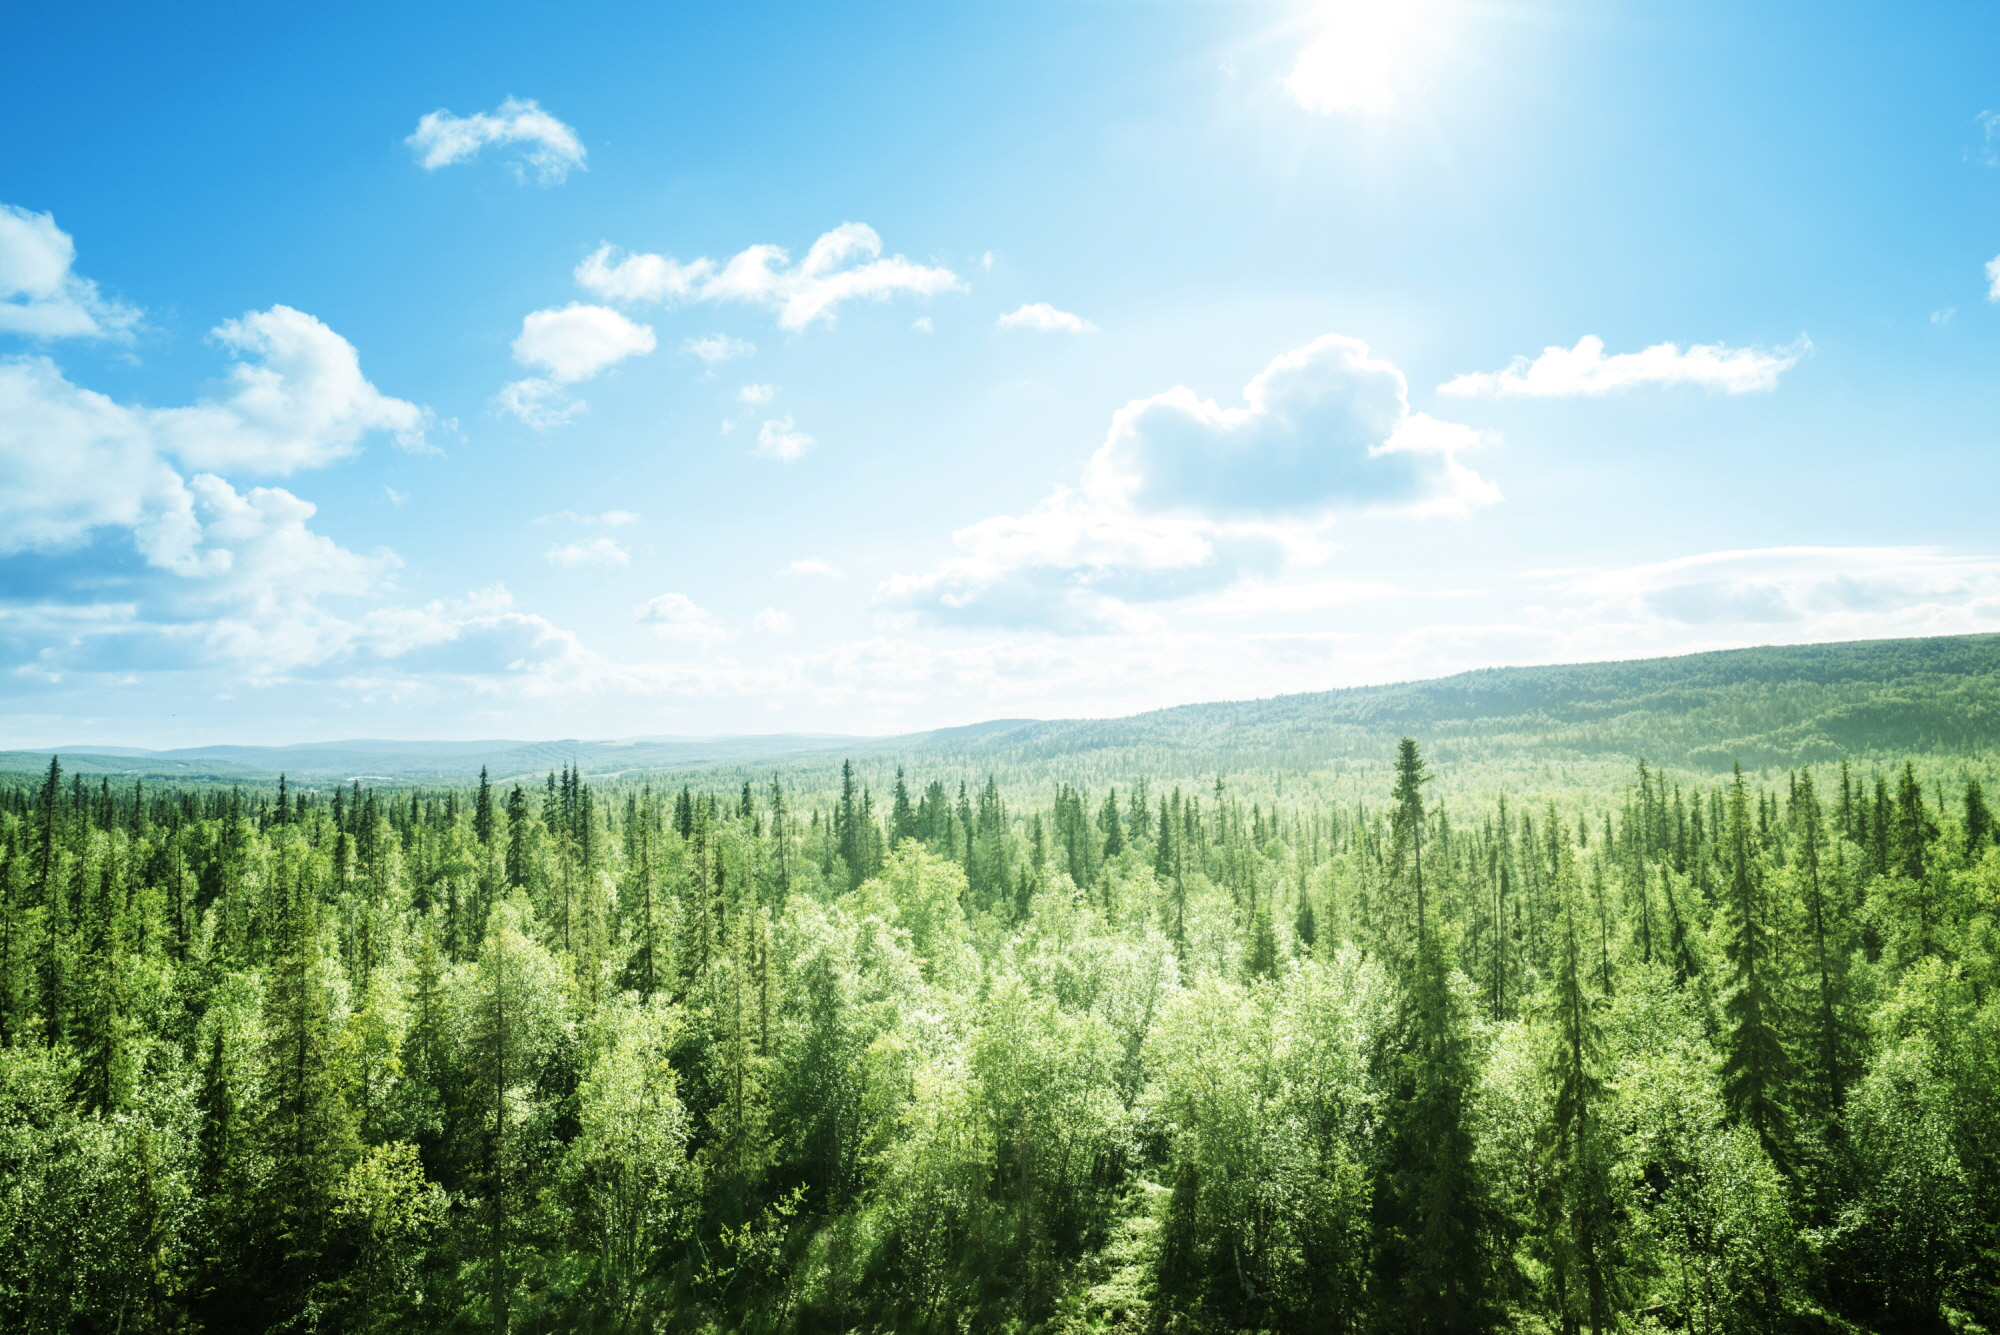 A landscape shot of sprawling green forest with the sun shining through a clear blue sky